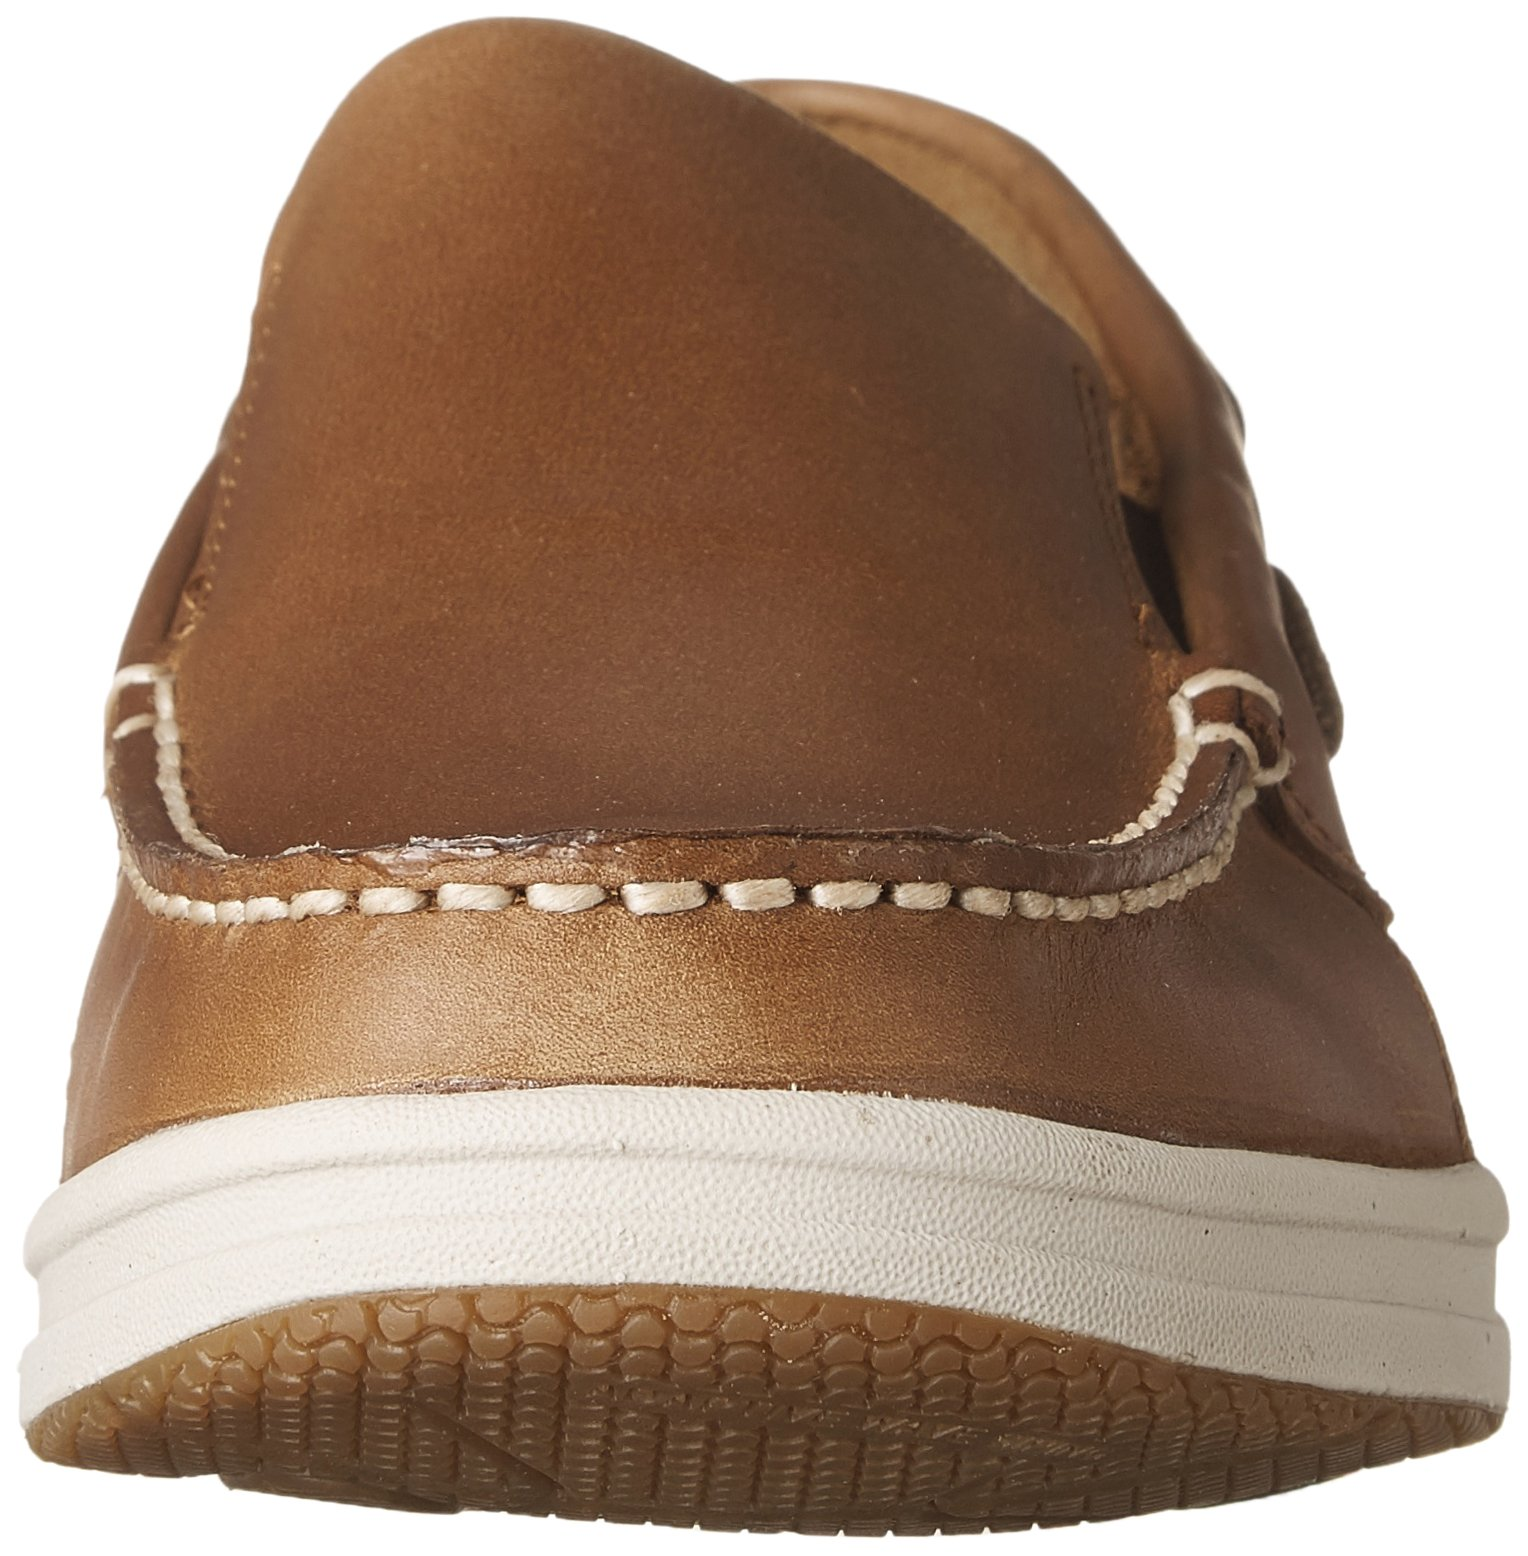 Sperry Top-Sider Men's Gamefish Slip On Boat Shoe, Dark Tan, 10.5 M US by Sperry Top-Sider (Image #4)